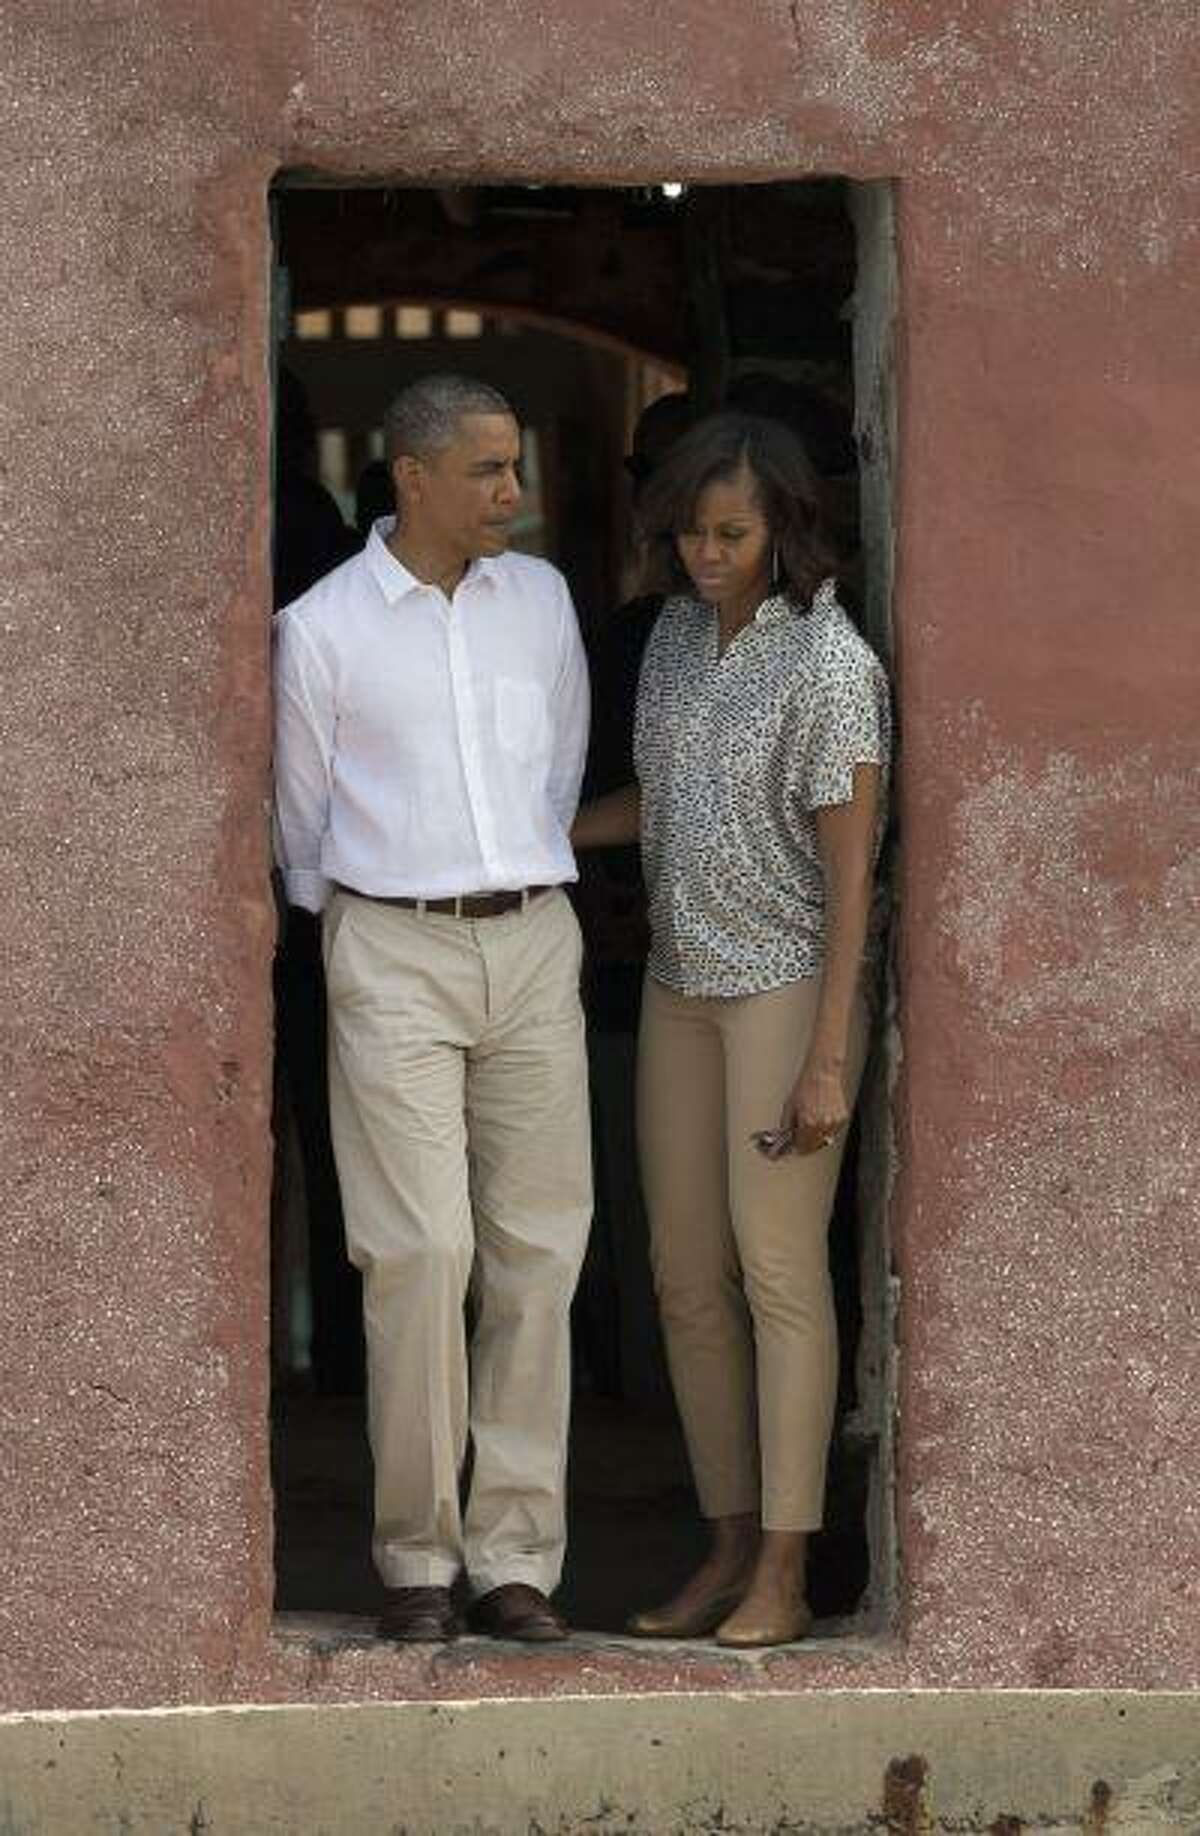 U.S. President Barack Obama and first lady Michelle Obama stand together at the 'Door of No Return,' at the slave house on Goree Island, in Dakar, Senegal, Thursday, June 27, 2013. Obama is calling his visit to a Senegalese island from which Africans were said to have been shipped across the Atlantic Ocean into slavery, a 'very powerful moment.' He was in Dakar Thursday as part of a weeklong trip to Africa, a three-country visit aimed at overcoming disappointment on the continent over the first black U.S. president's lack of personal engagement during his first term.(AP Photo/Rebecca Blackwell)